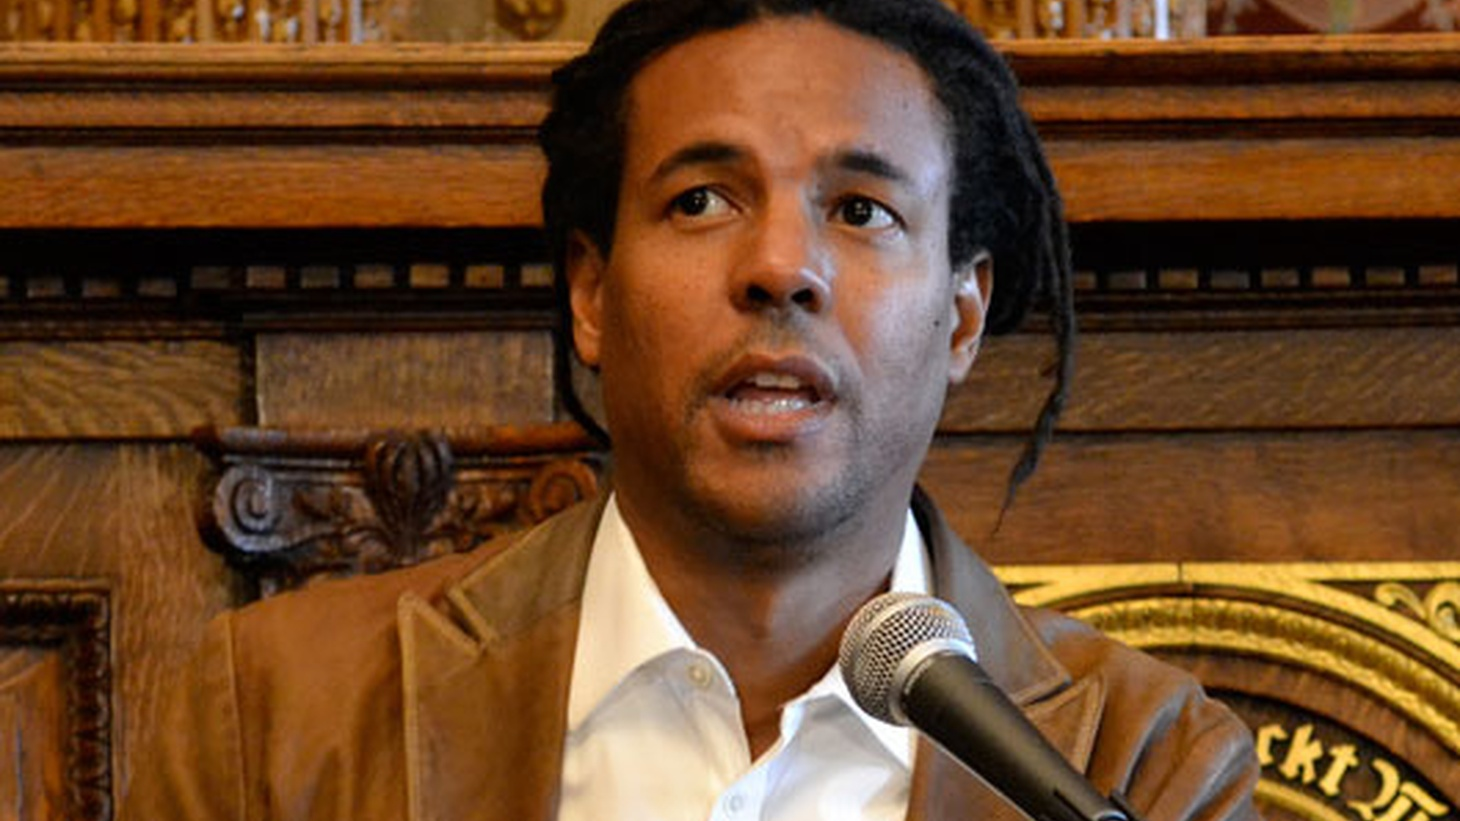 Colson Whitehead's new great American novel depicts a real underground railroad that transports a fugitive slave to stops that defy time and history, highlighting the daily struggles of black people, past and present.